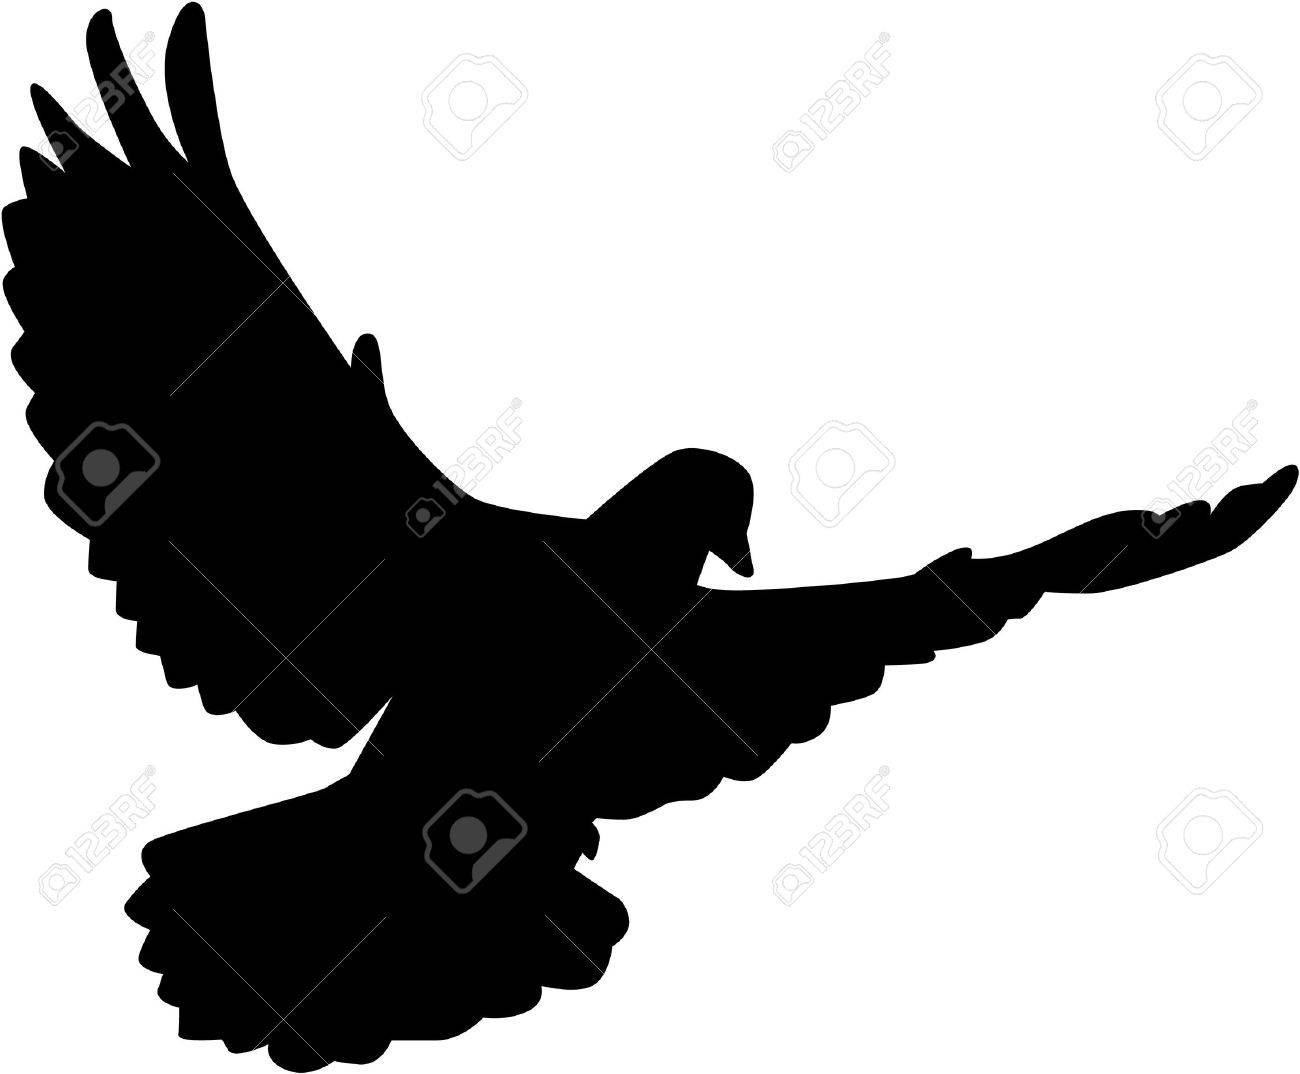 Flying Dove Silhouette Royalty Free Cliparts Vectors And Stock Illustration Image 43622535 Find high quality dove silhouette, all silhouette images can be downloaded for free for personal use only. flying dove silhouette